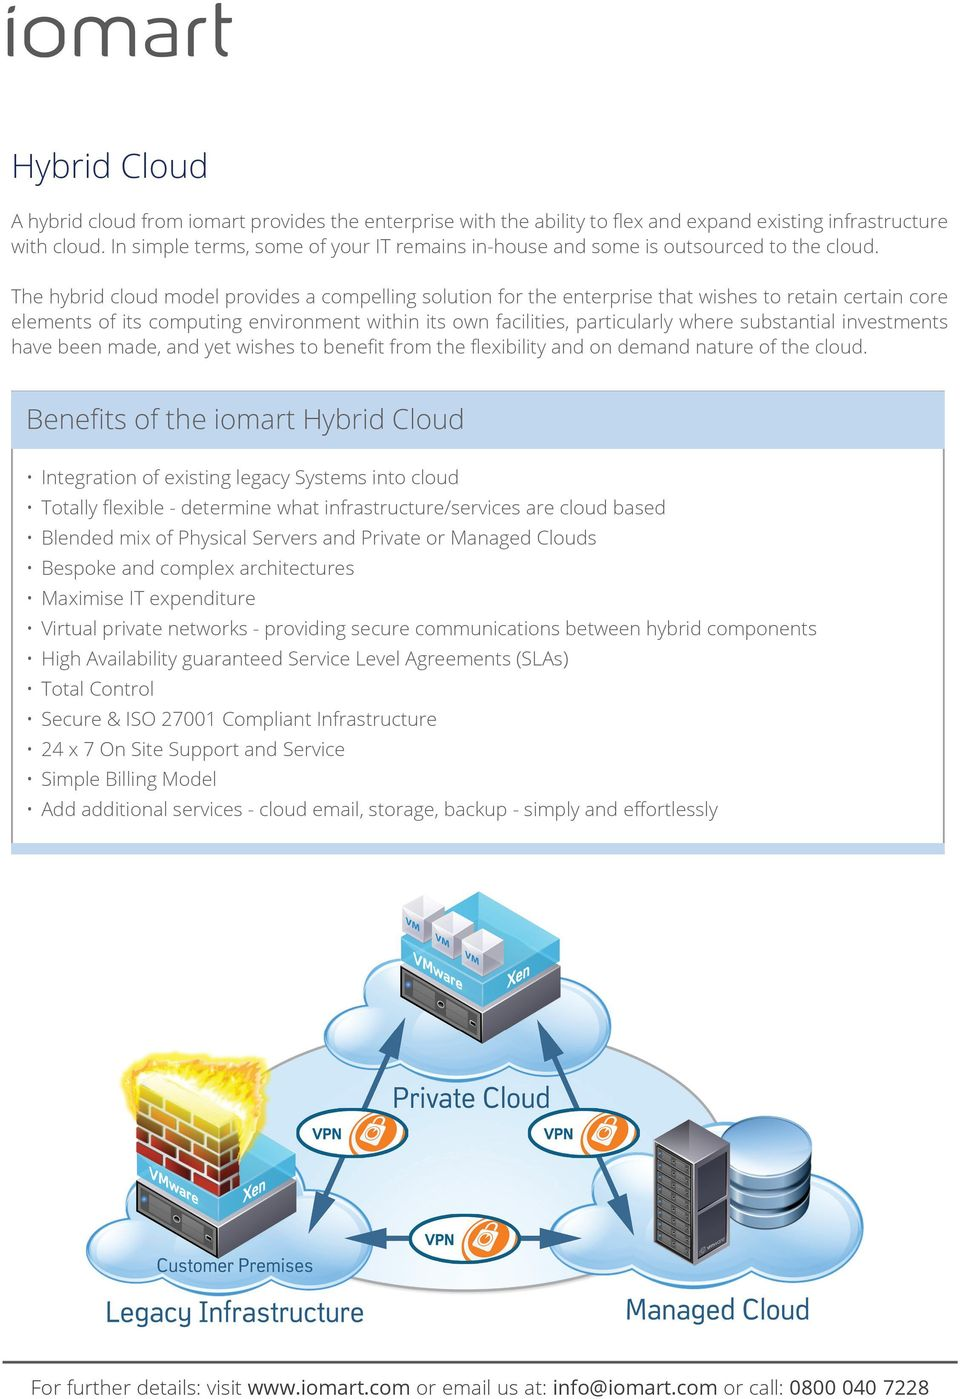 The hybrid cloud model provides a compelling solution for the enterprise that wishes to retain certain core elements of its computing environment within its own facilities, particularly where